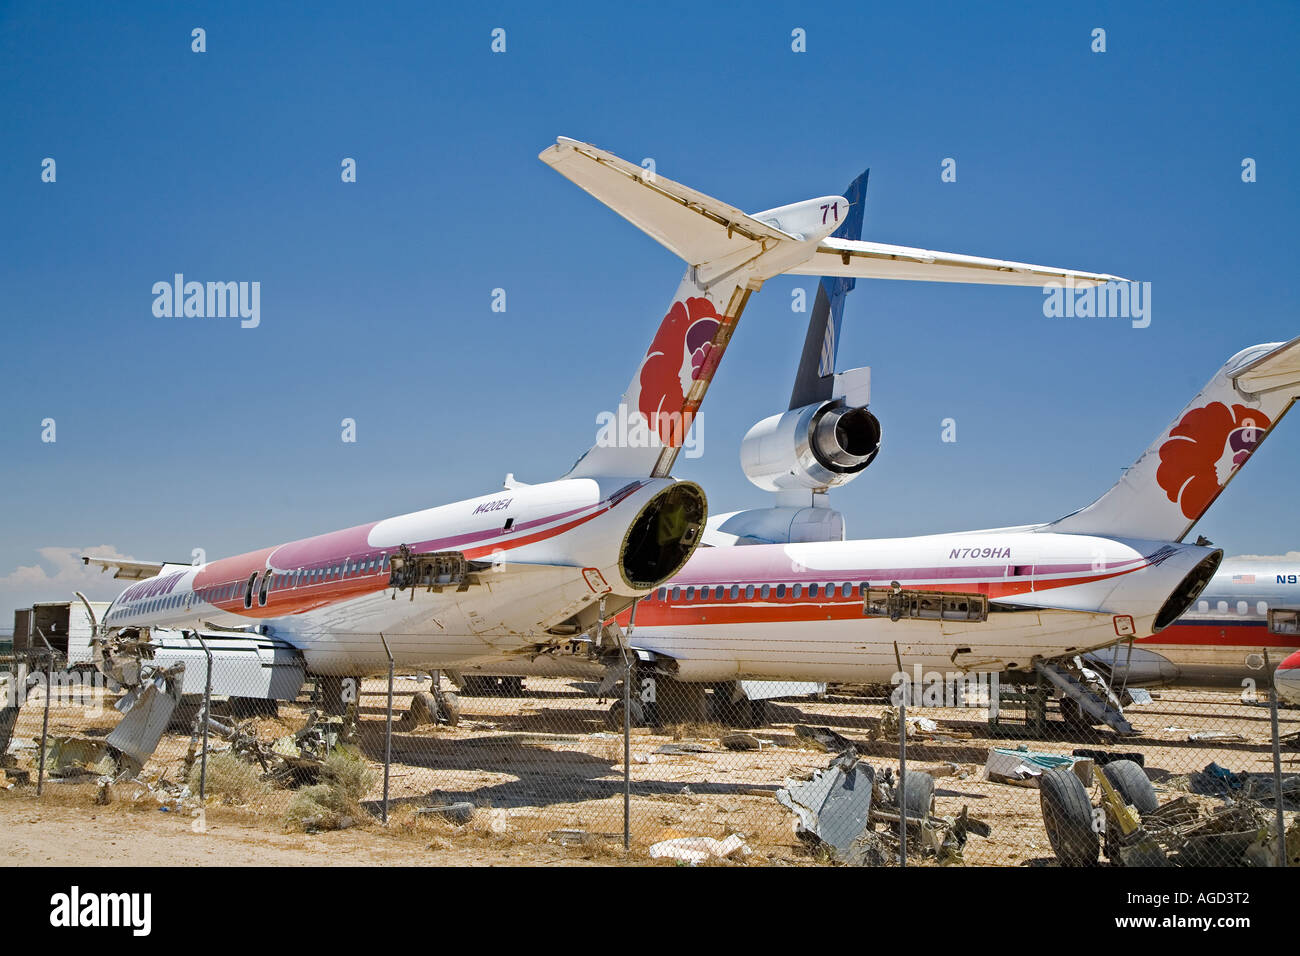 Airliners Being Dismantled for Scrap - Stock Image